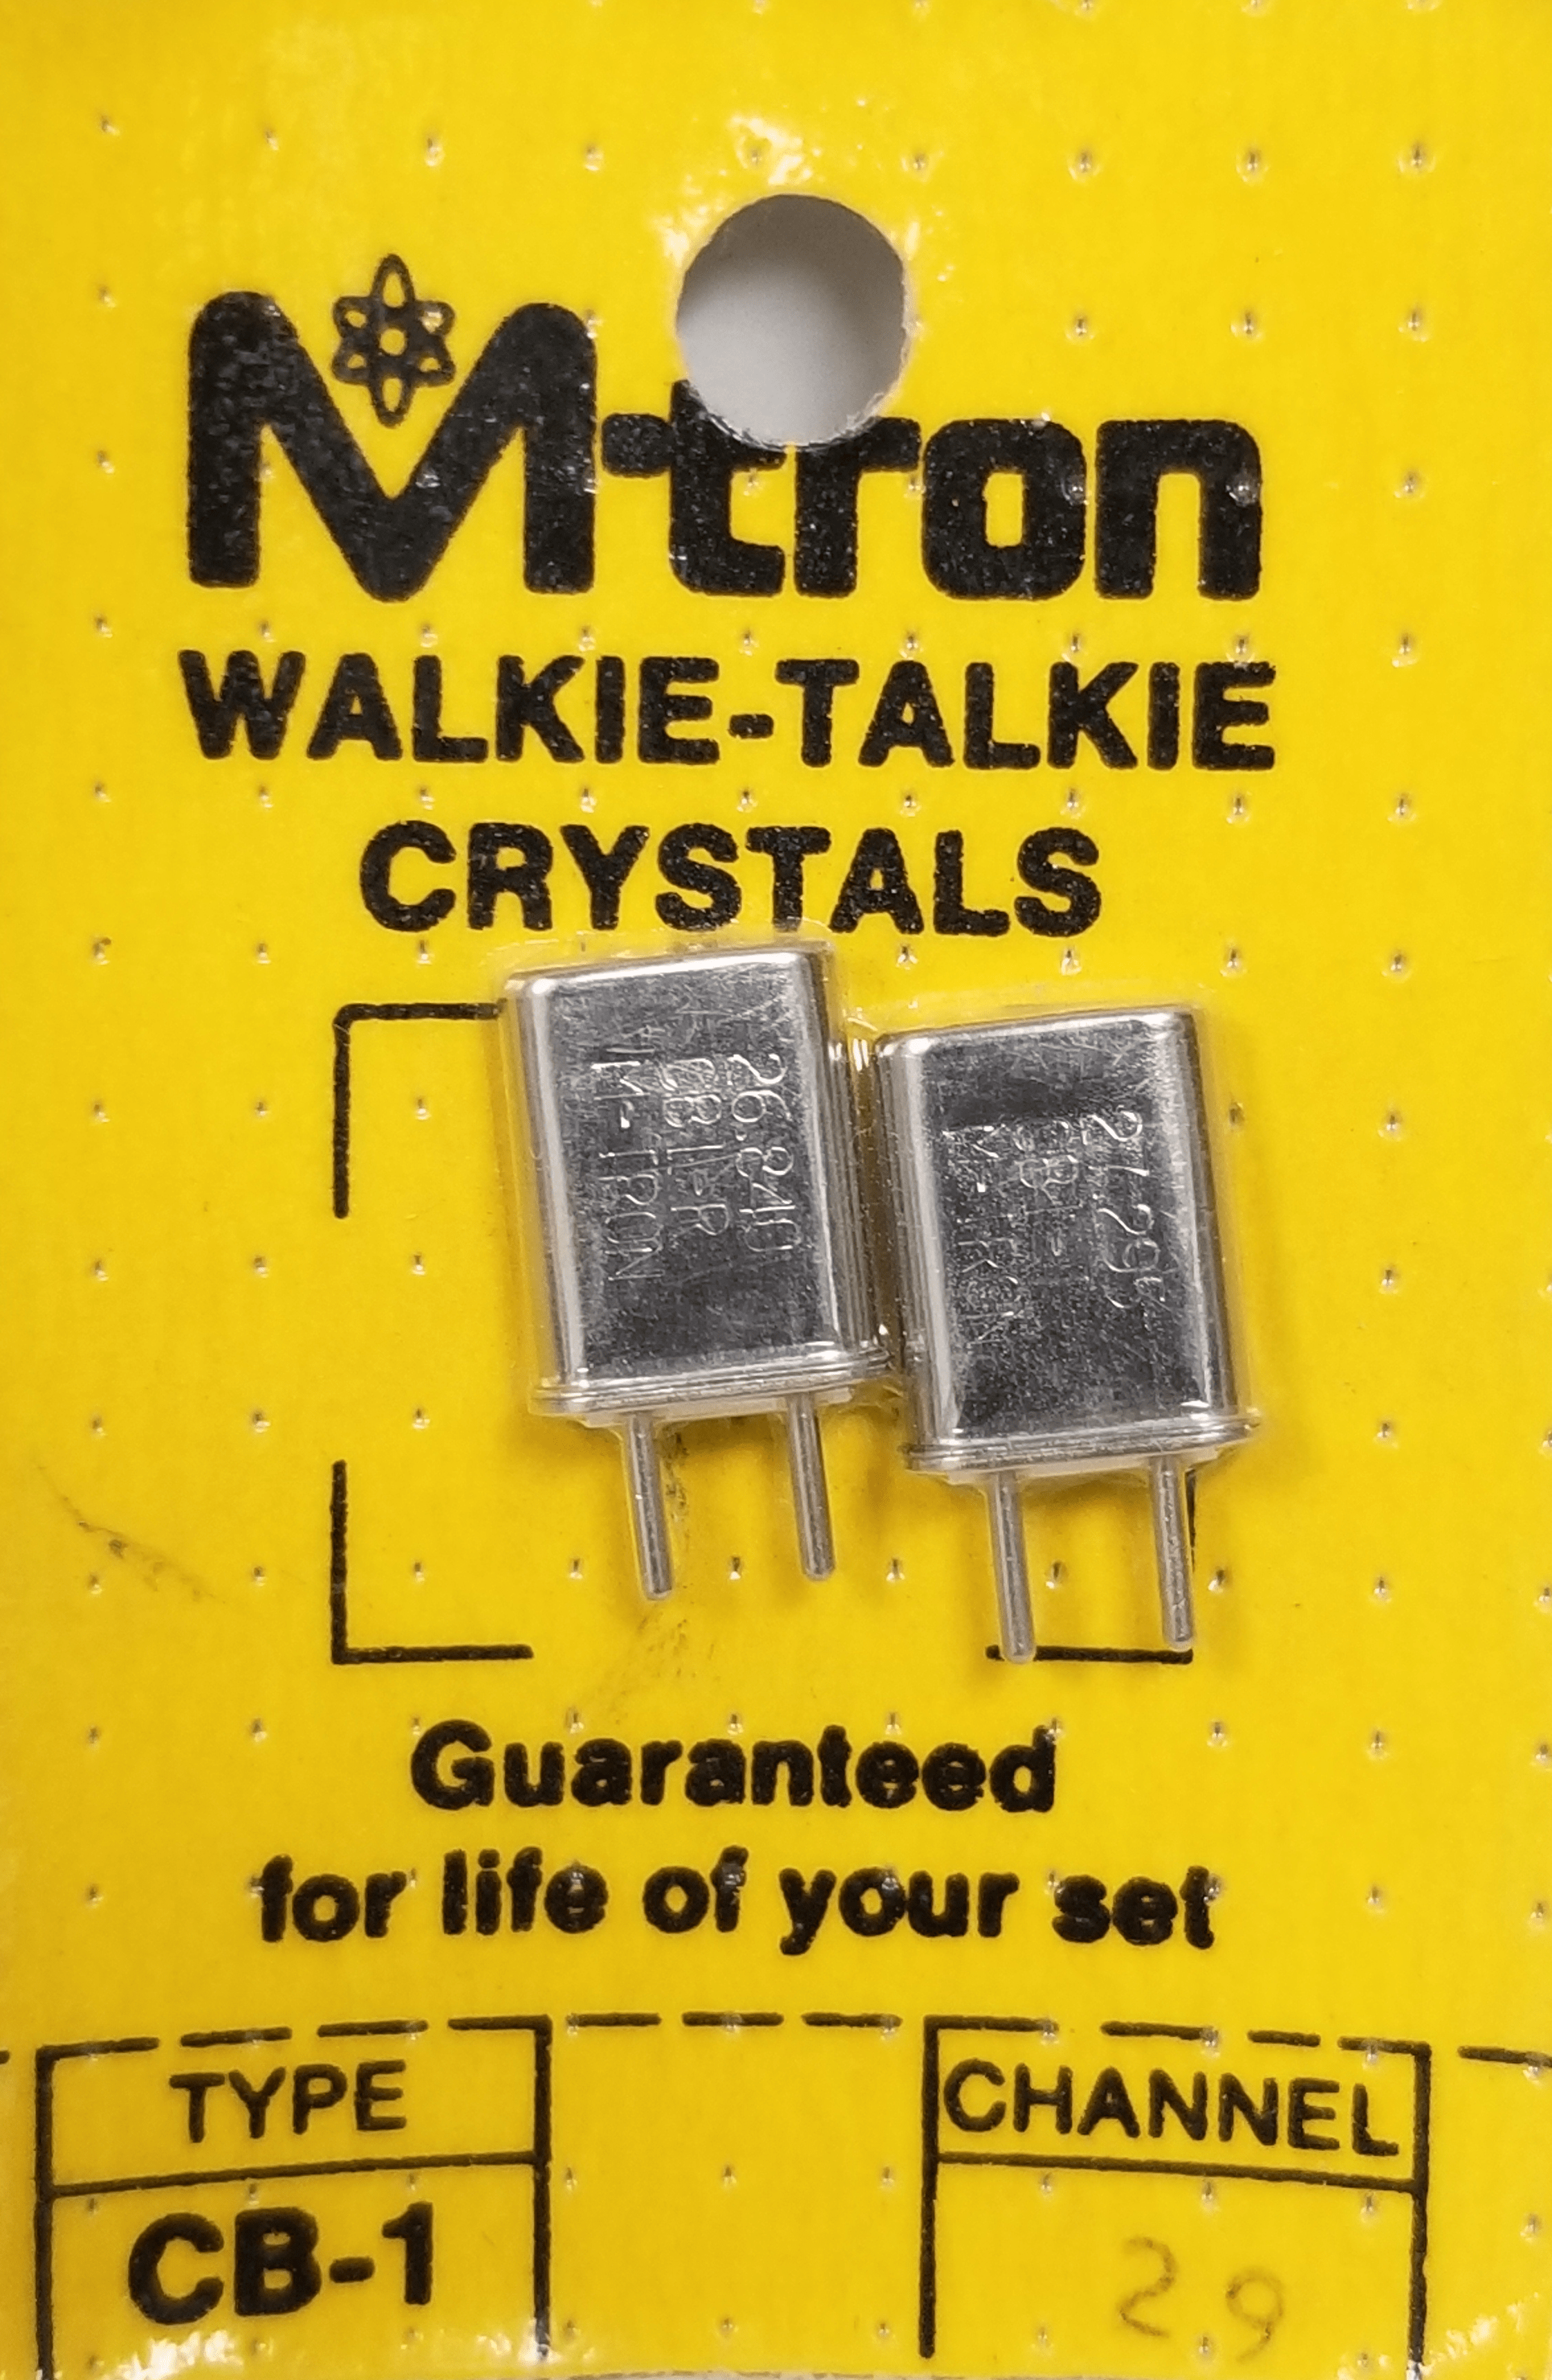 CH29 - Channel 29 Receive & Transmit Crystal Pair For Walkie Talkies